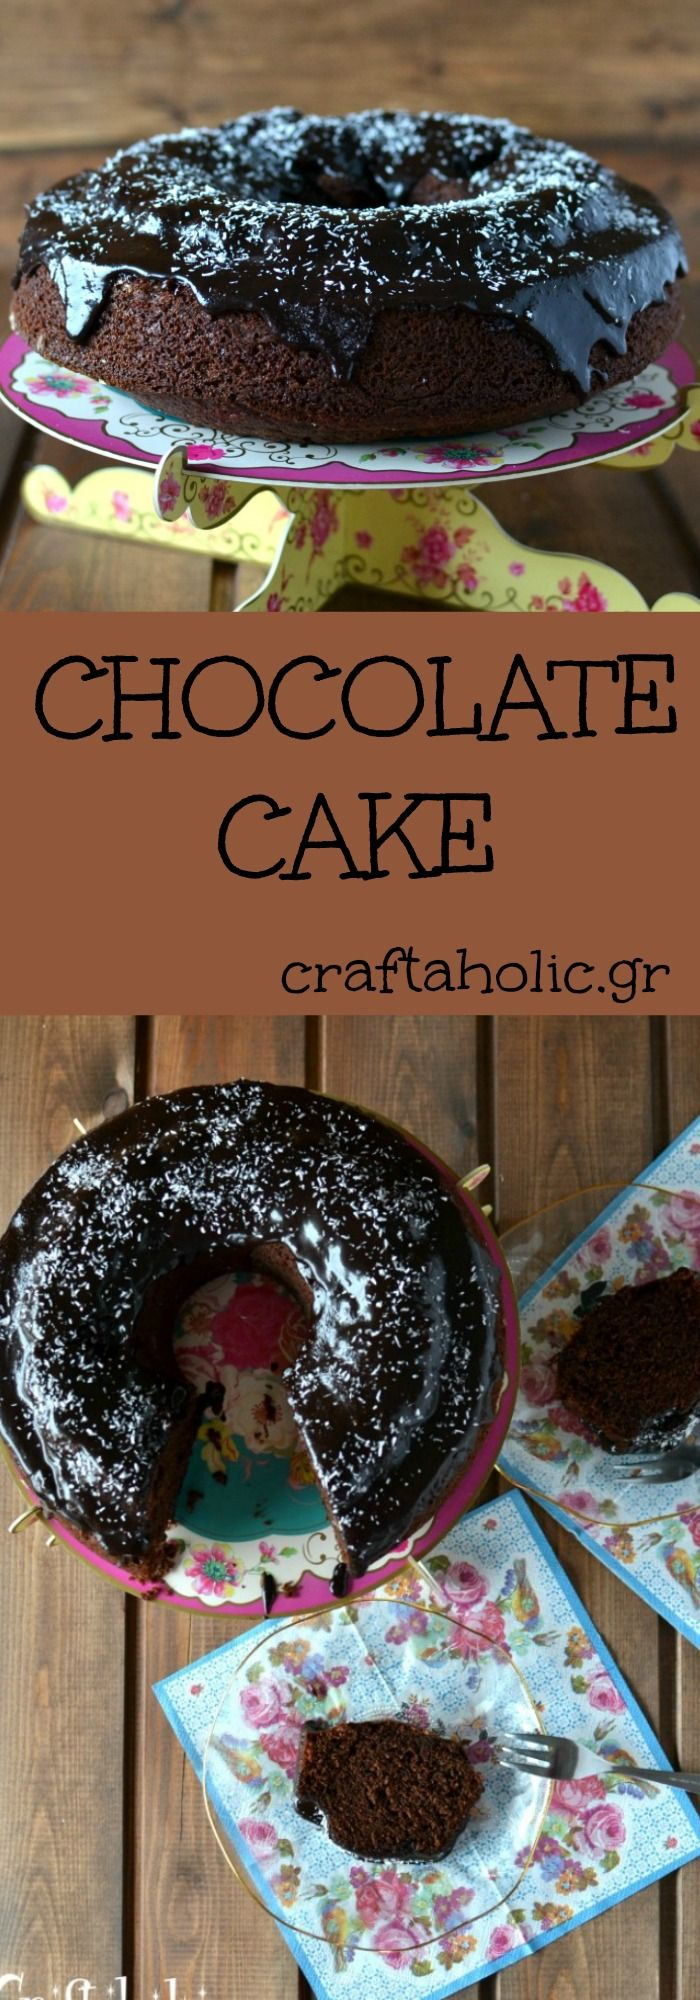 My mom's recipe for the best chocolate cake ever!